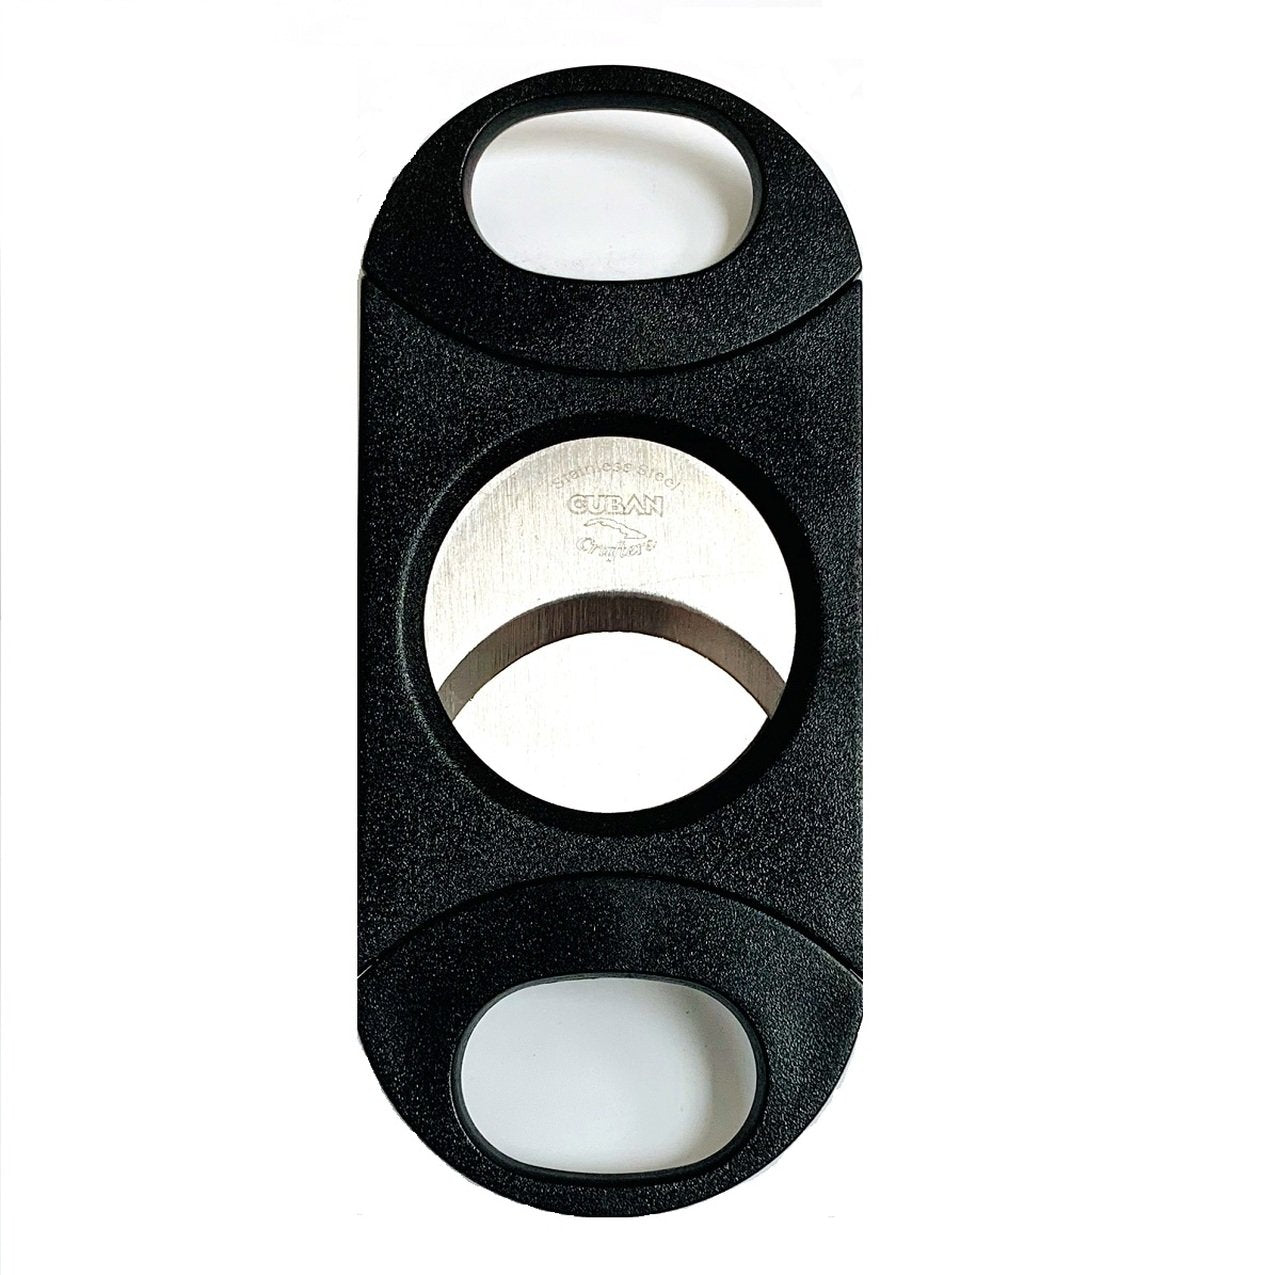 Cuban Crafters Cigar Cutter Up To 80 Ring Gauge